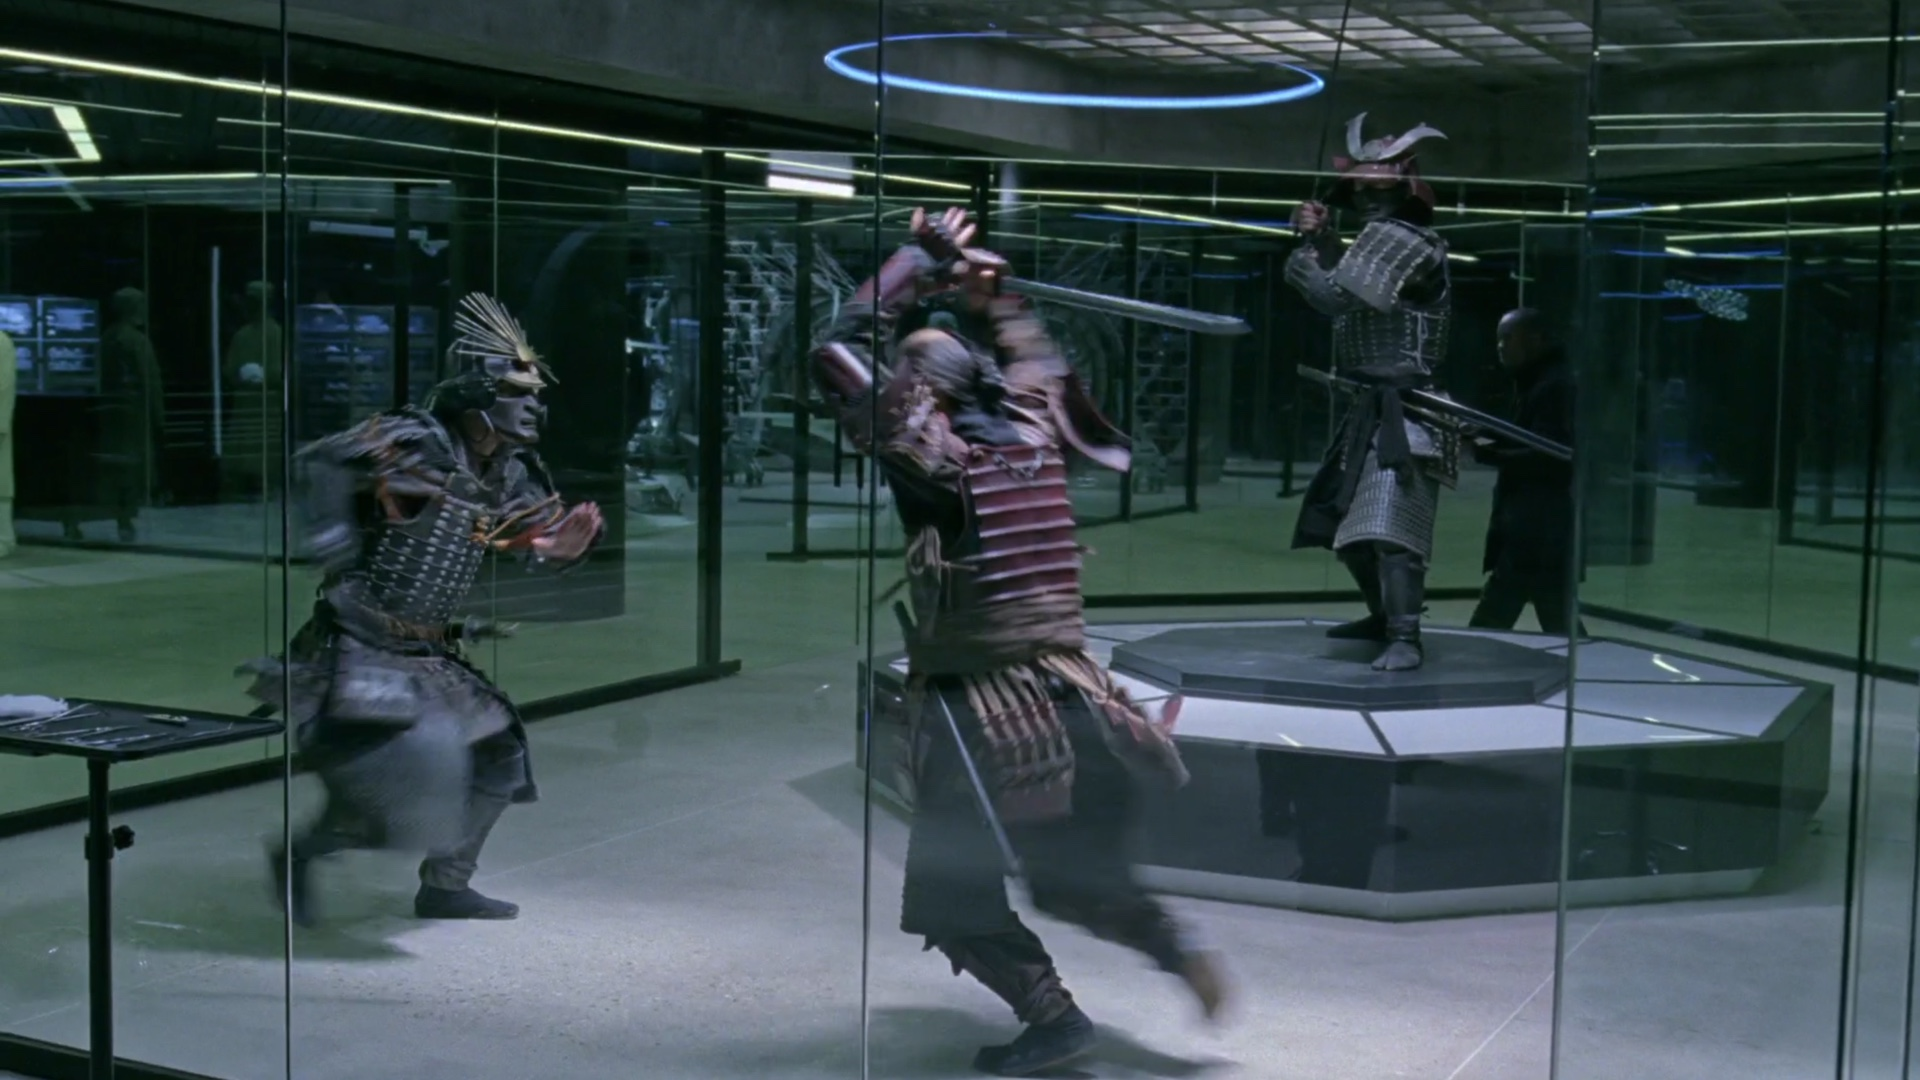 Samuraiworld in Westworld